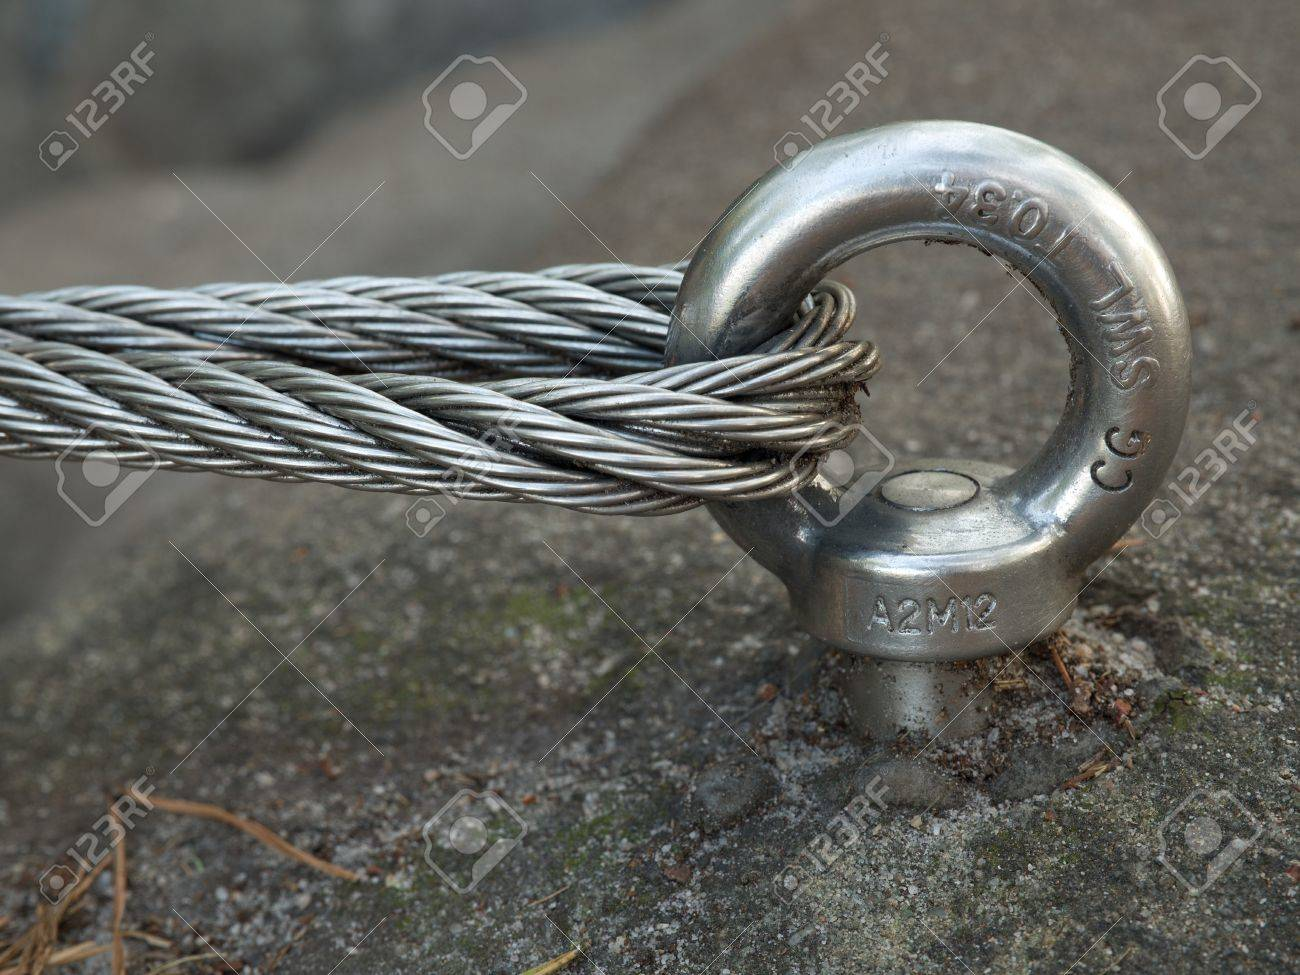 Detail of steel bolt anchor eye in sandstone rock. The end knot of steel rope. Climbers path via ferrata. Iron twisted rope fixed in block. - 47937736